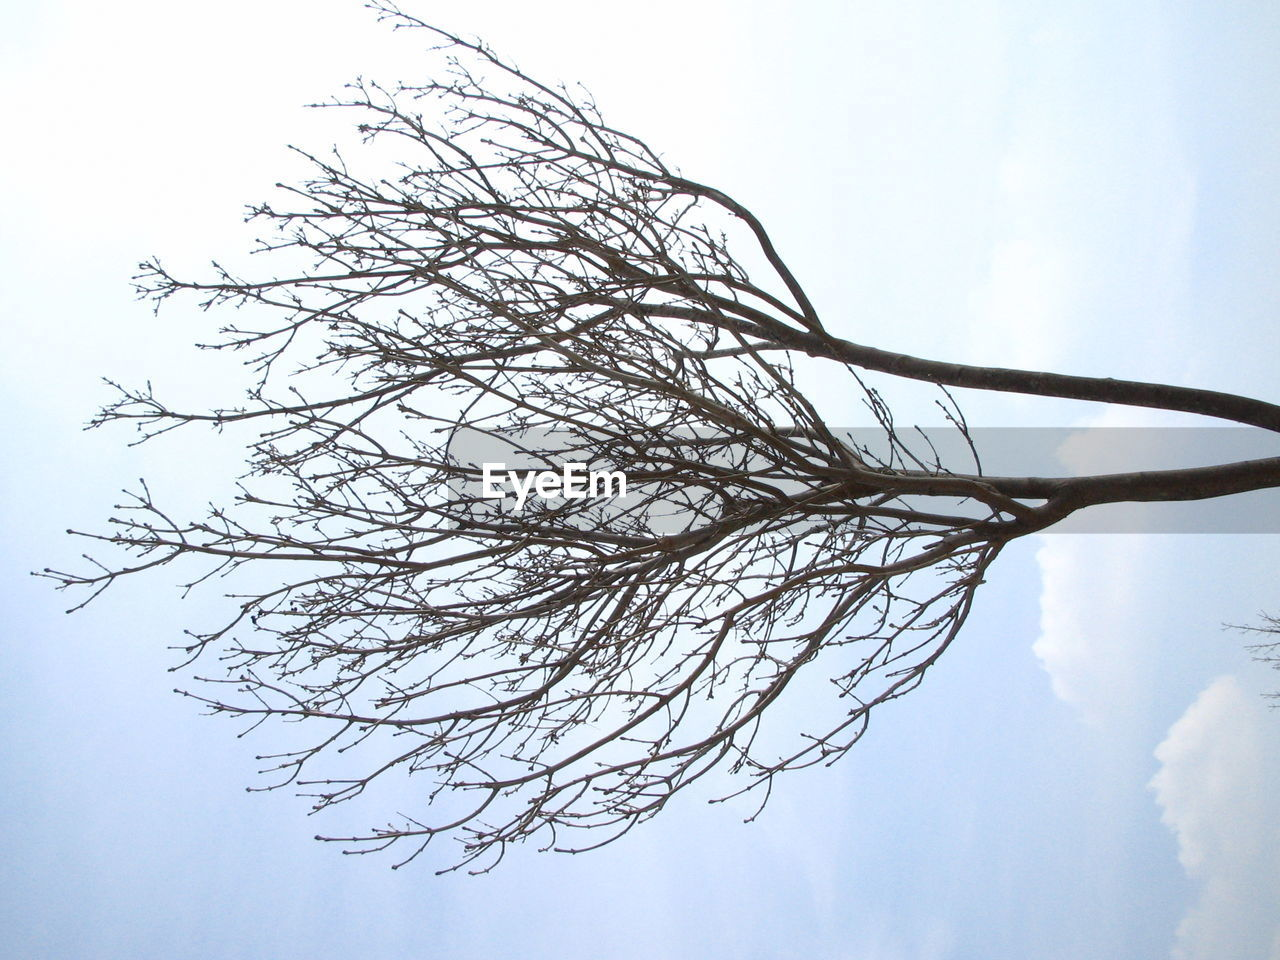 sky, nature, no people, day, outdoors, beauty in nature, low angle view, tree, close-up, freshness